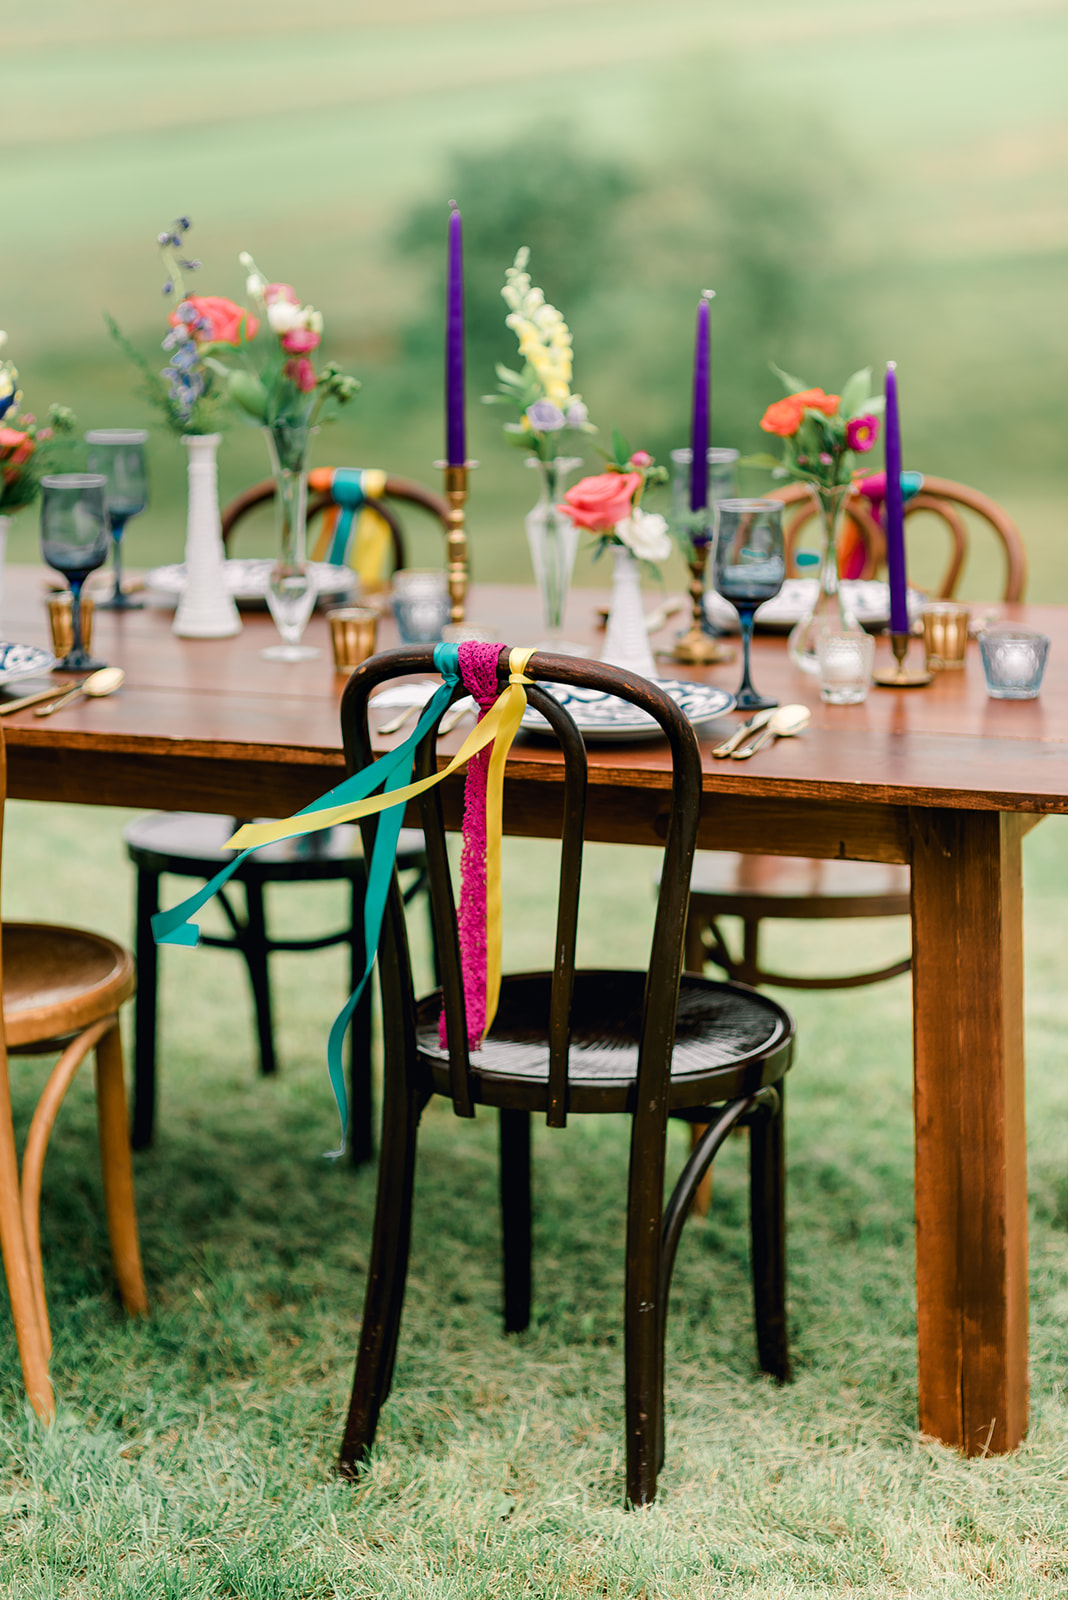 Fun & Colorful Barn Wedding Tablescape at Heaven Sent Farms in Avella Dawn Derbyshire Photography (3).jpg